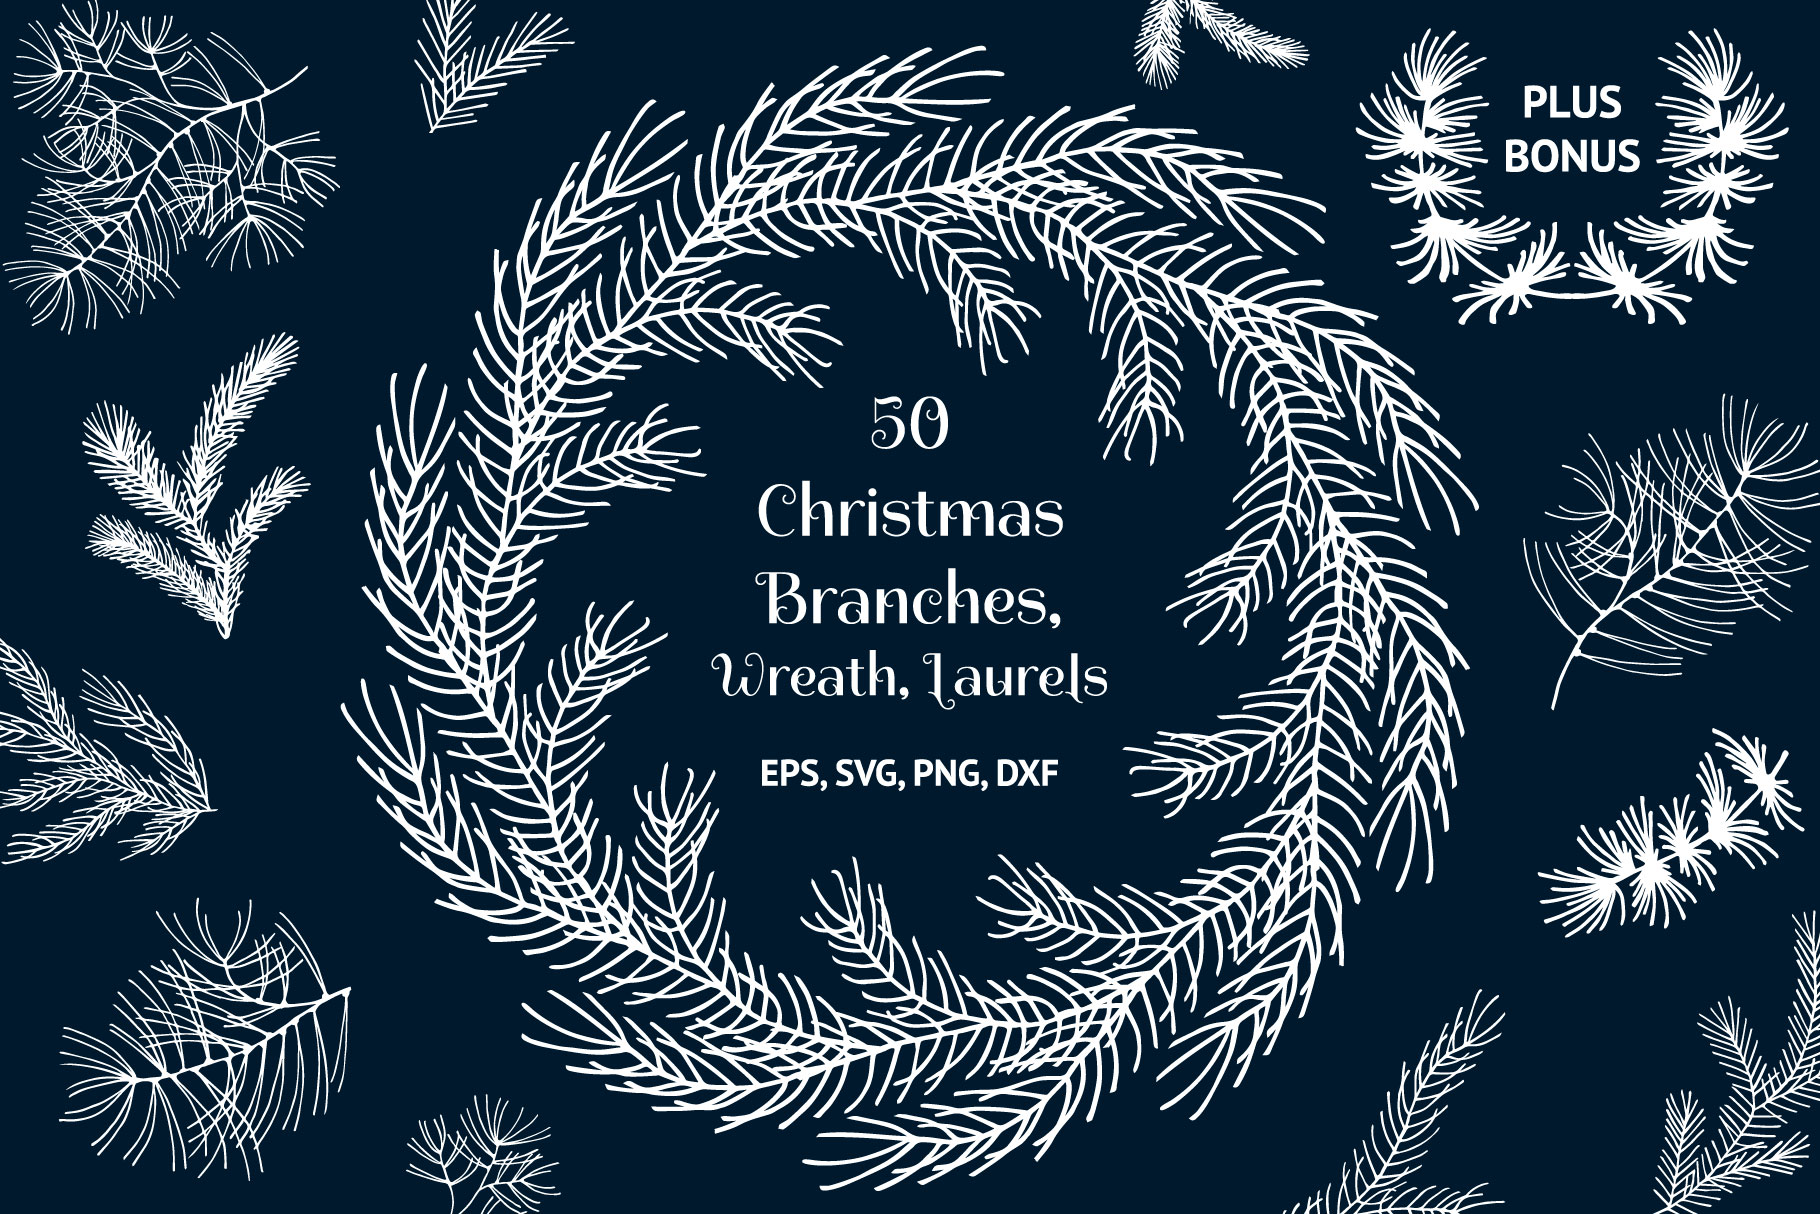 50 Hand Drawn Christmas Branches, Wreaths, Laurels, Dividers example image 1